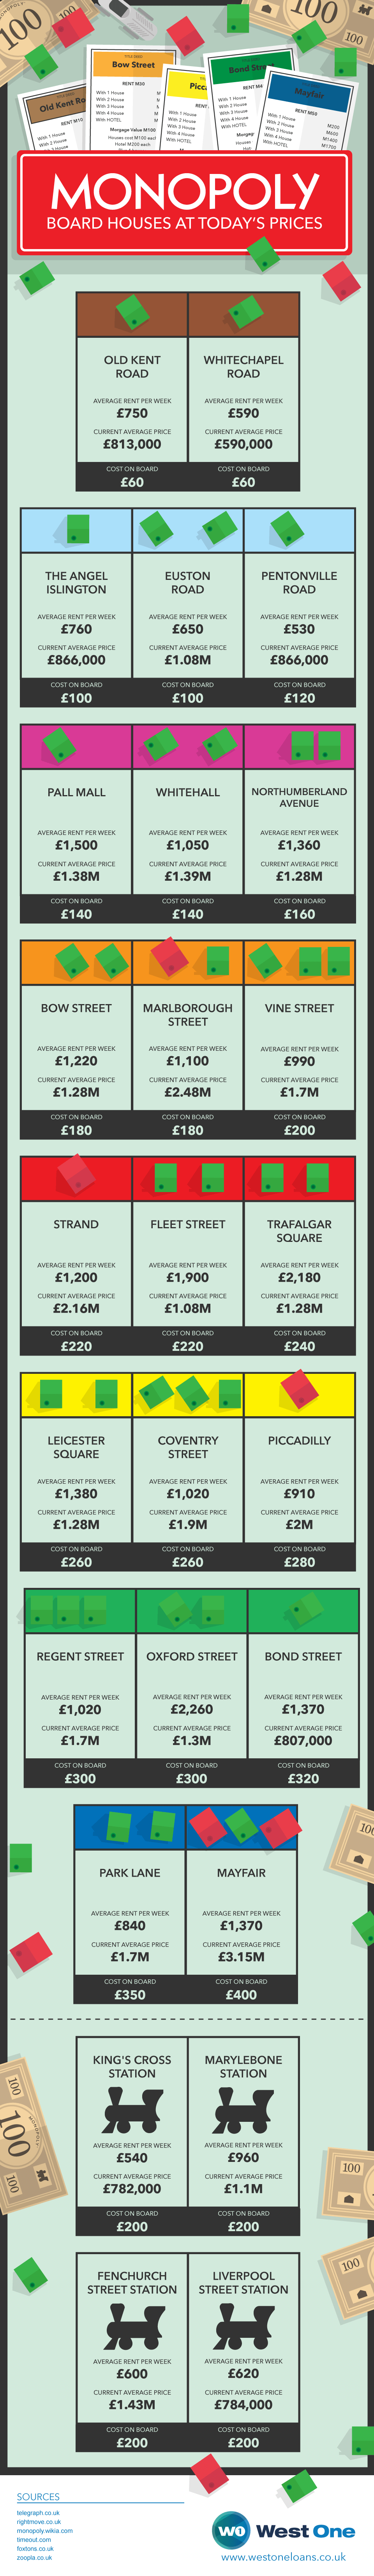 Monopoly-board-prices-v2.png